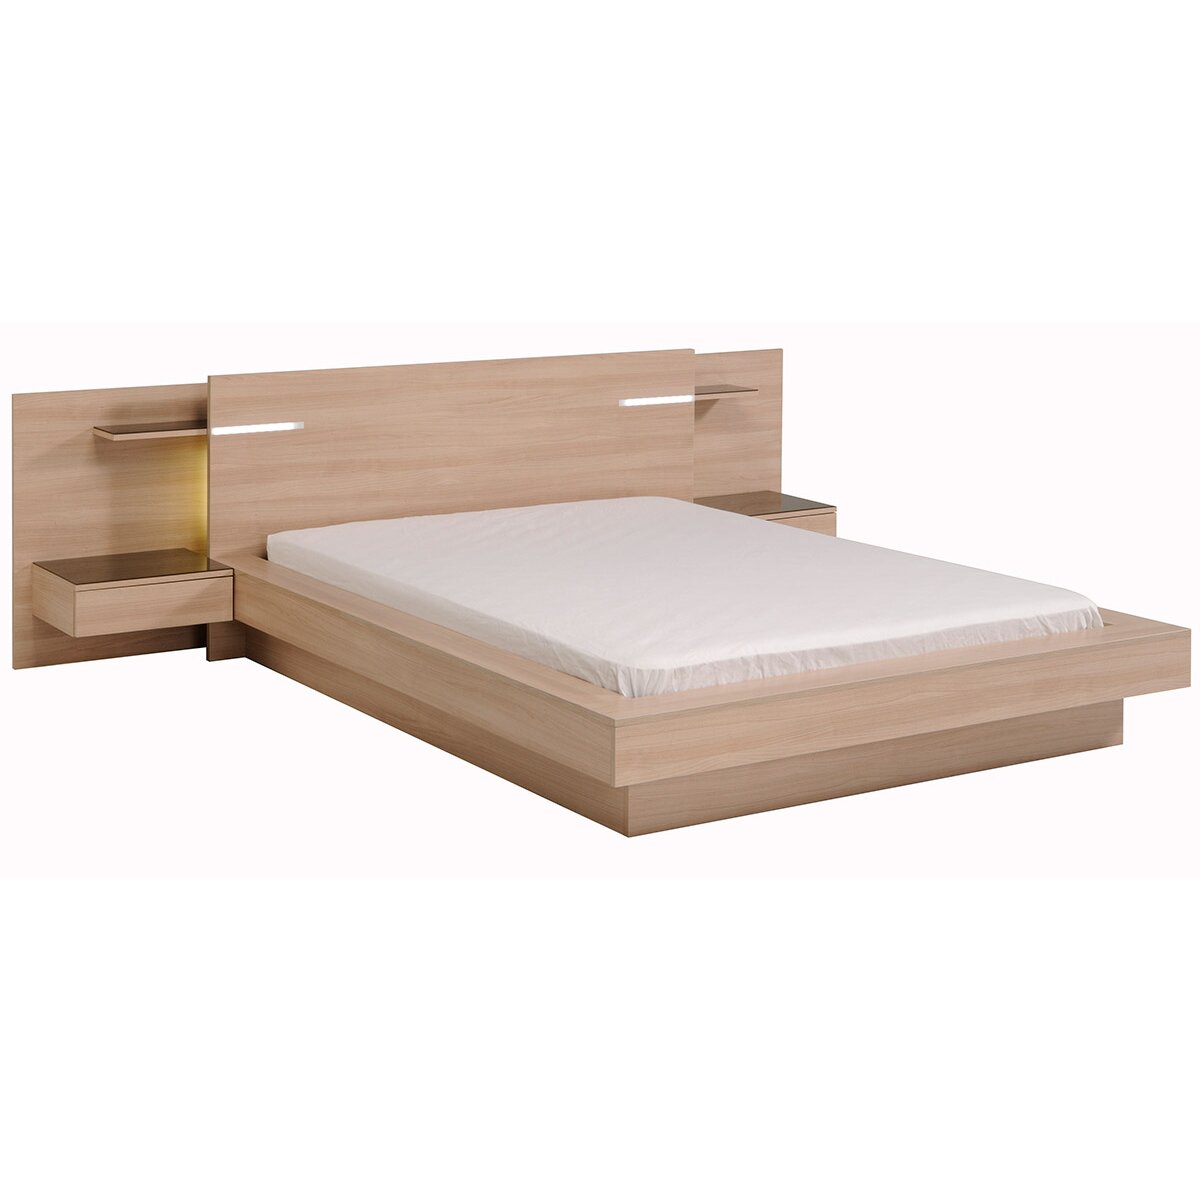 Parisot life queen platform bed wayfair for Average lifespan of a mattress